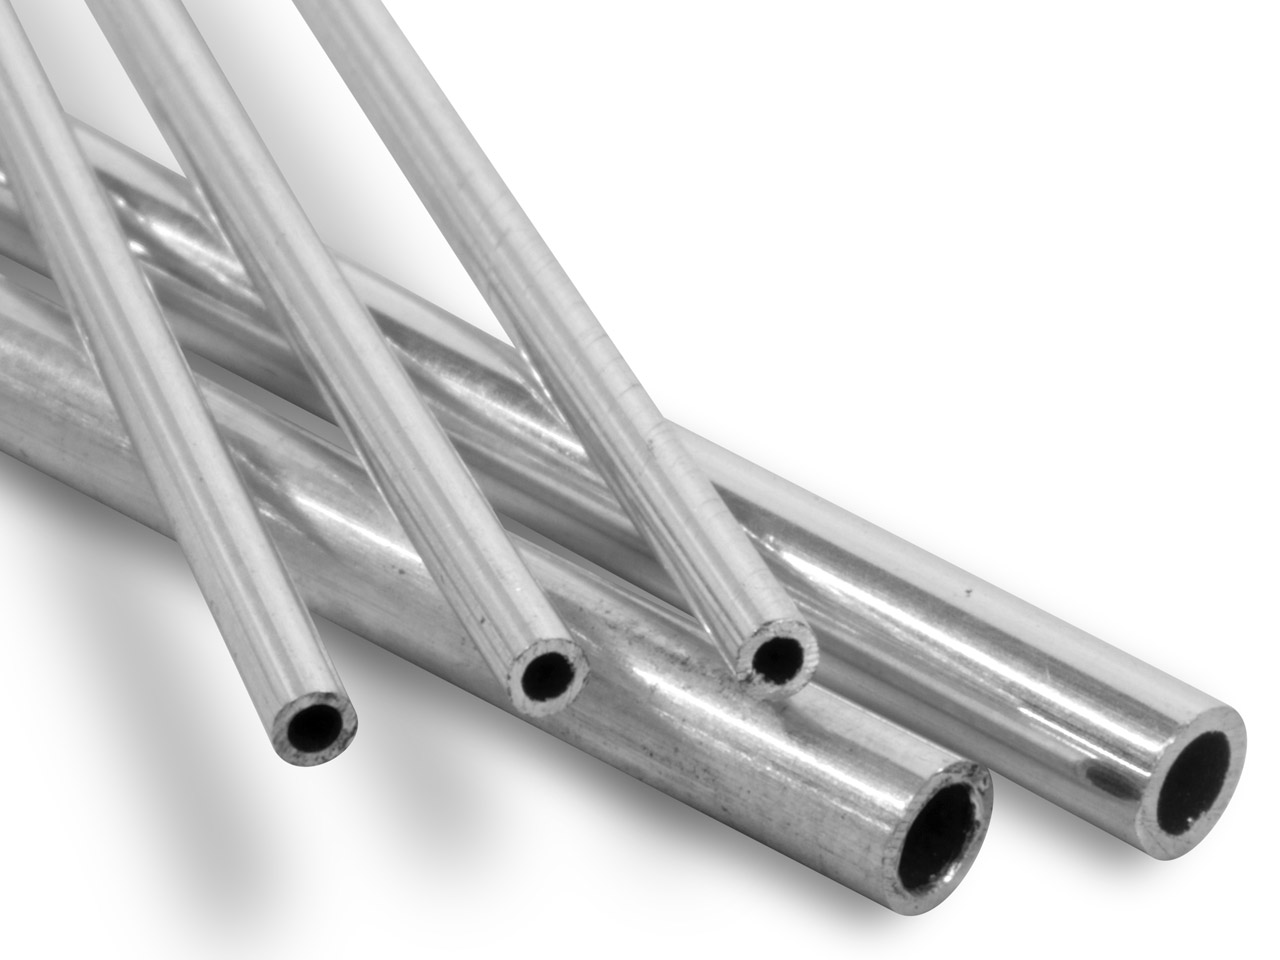 Sterling Silver Tube, Ref B,       Outside Diameter 6.0mm,            Inside Diameter 4.6mm, 0.7mm Wall  Thickness